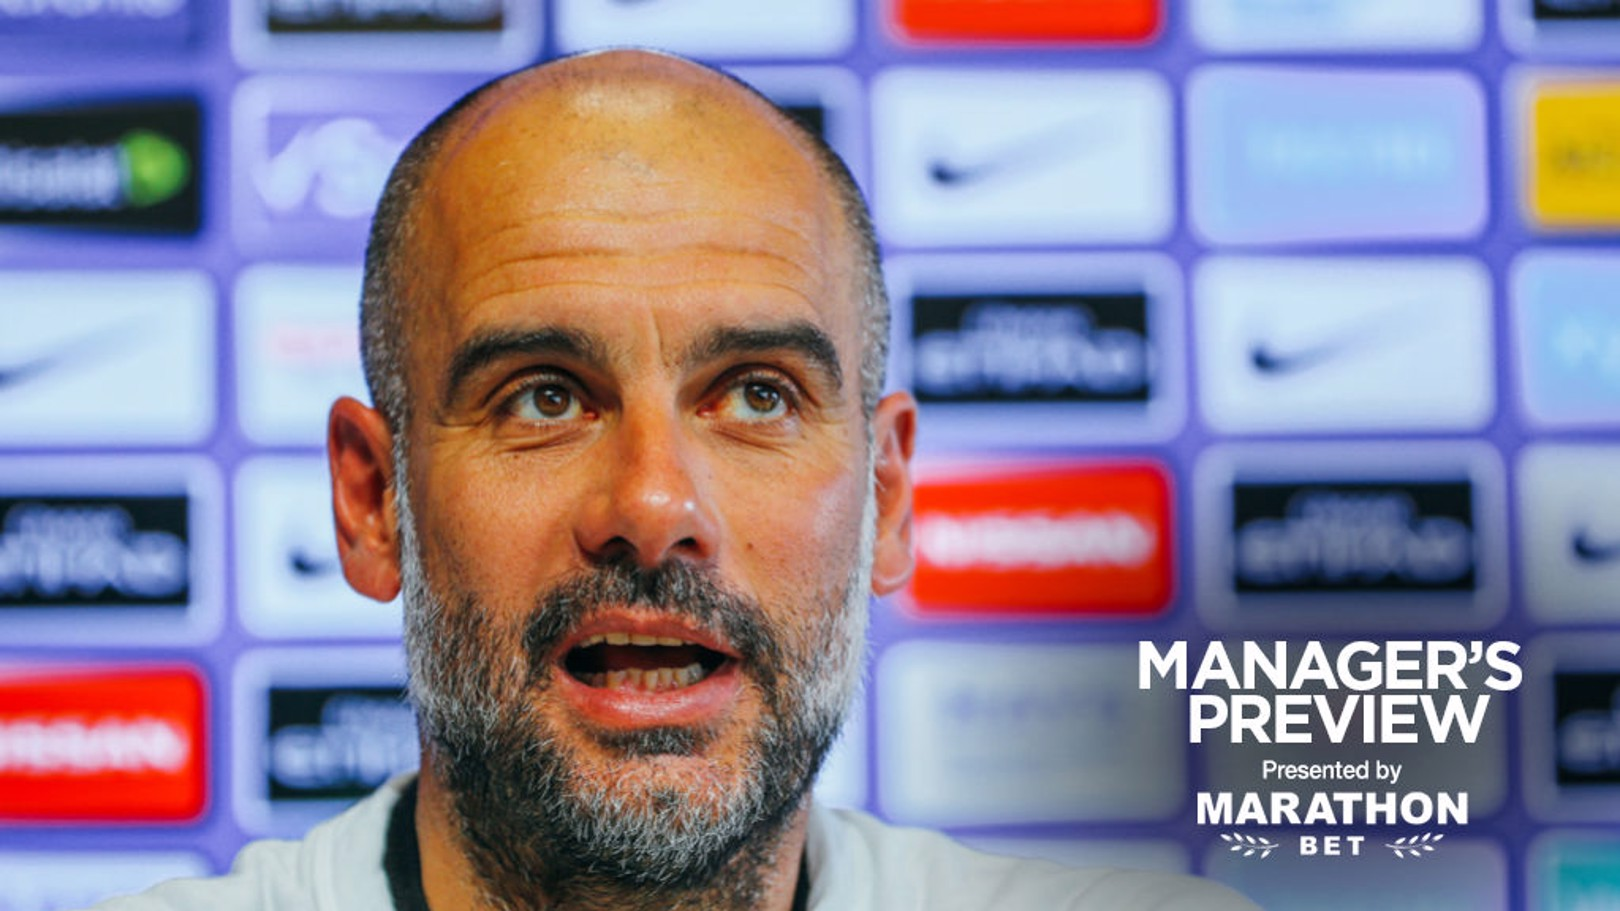 PEP TALK: The boss gives us an update on Aguero and Delph ahead of Wednesday's game